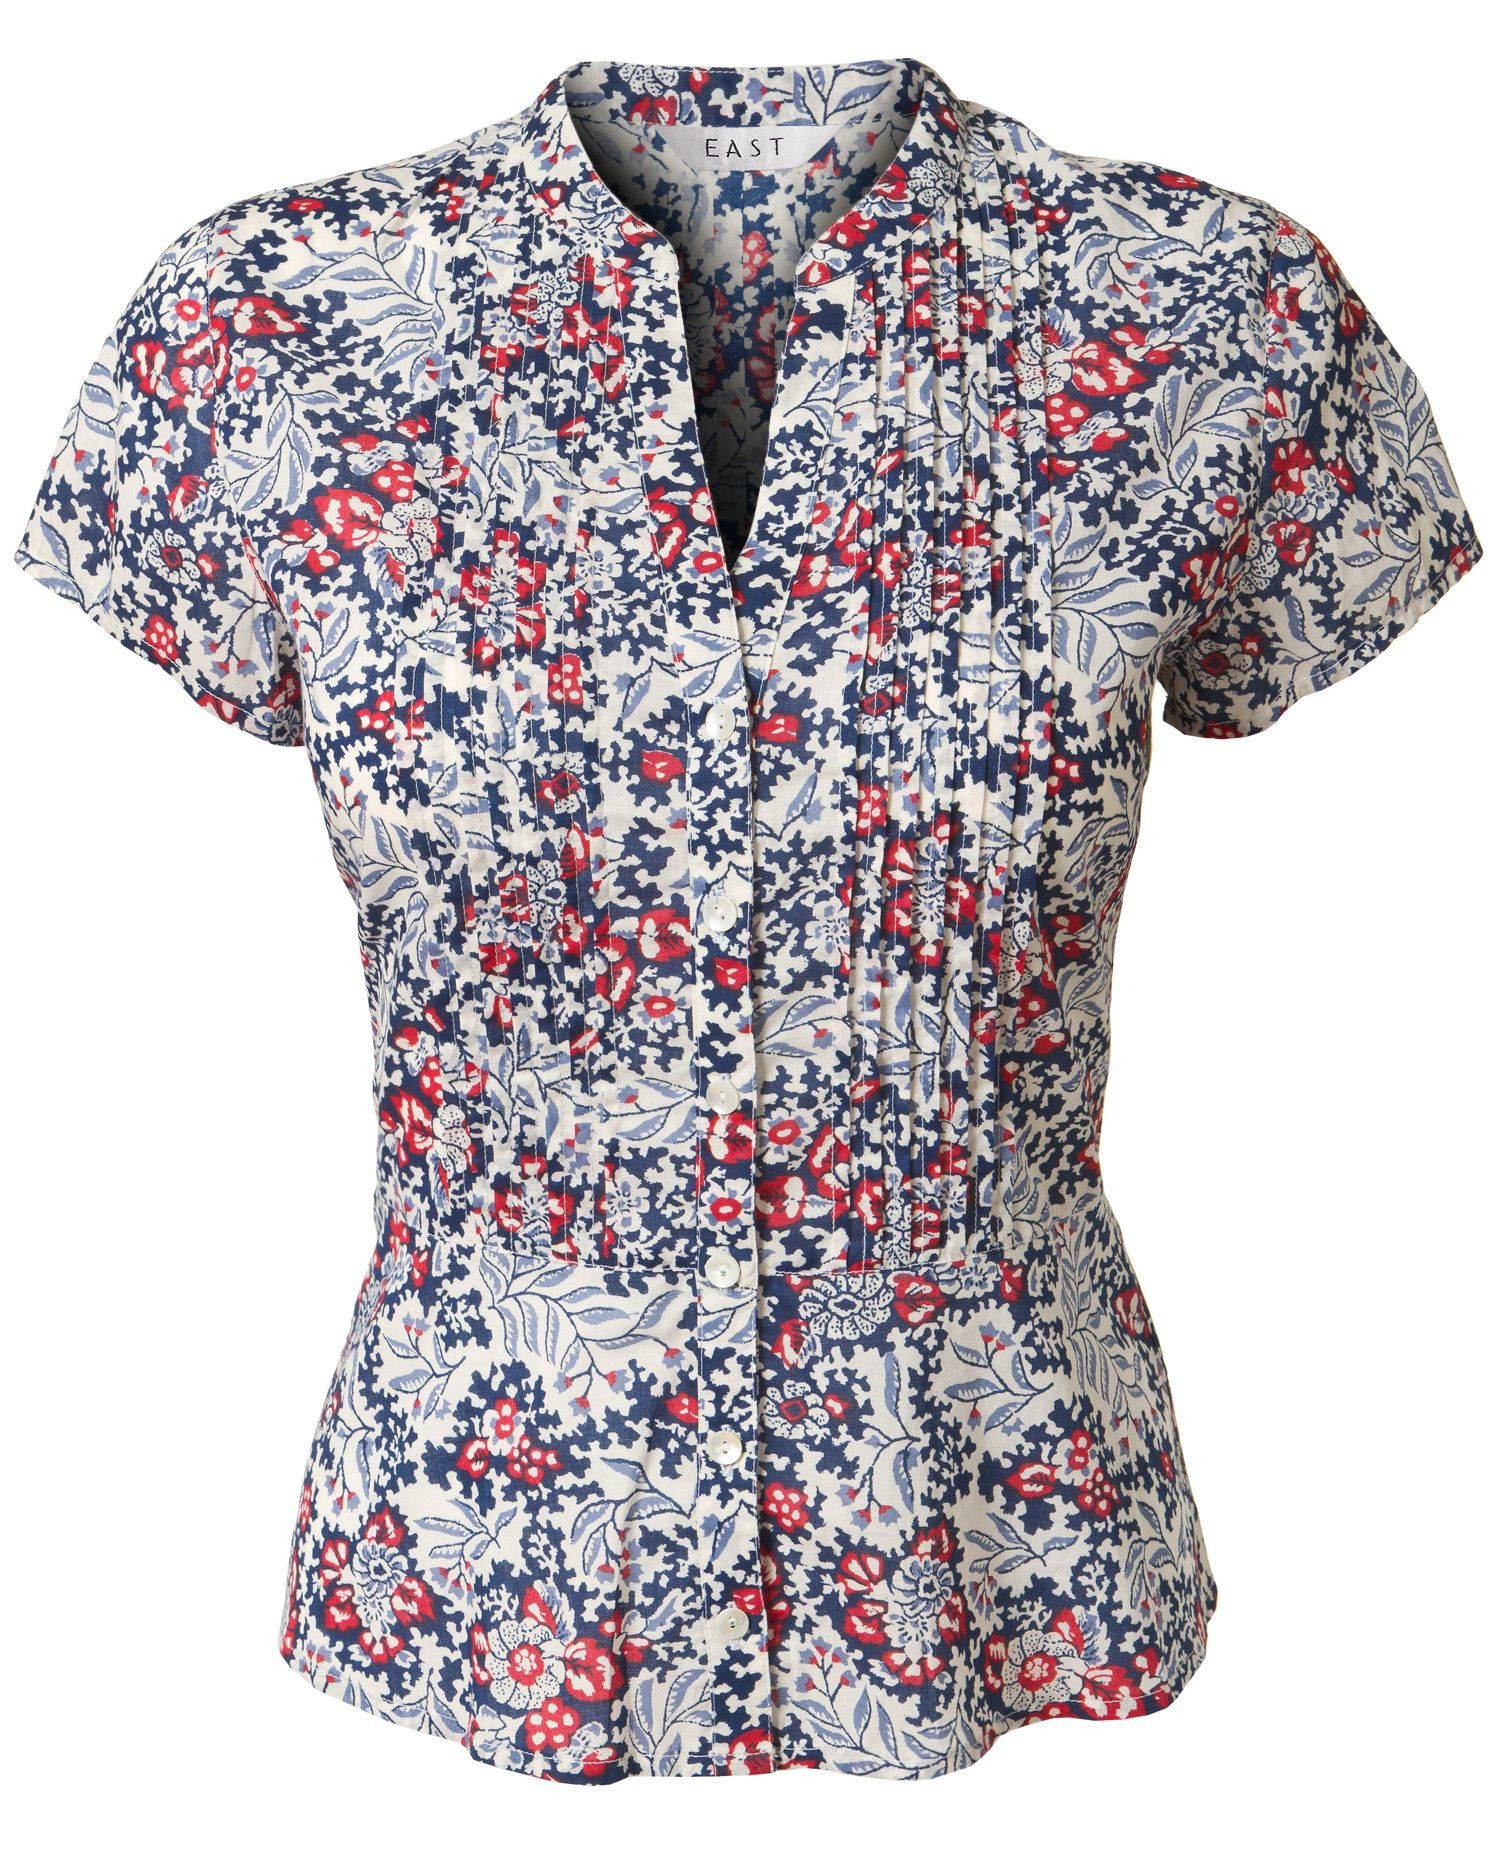 East Womens East Melita print blouse, Dark Blue product image